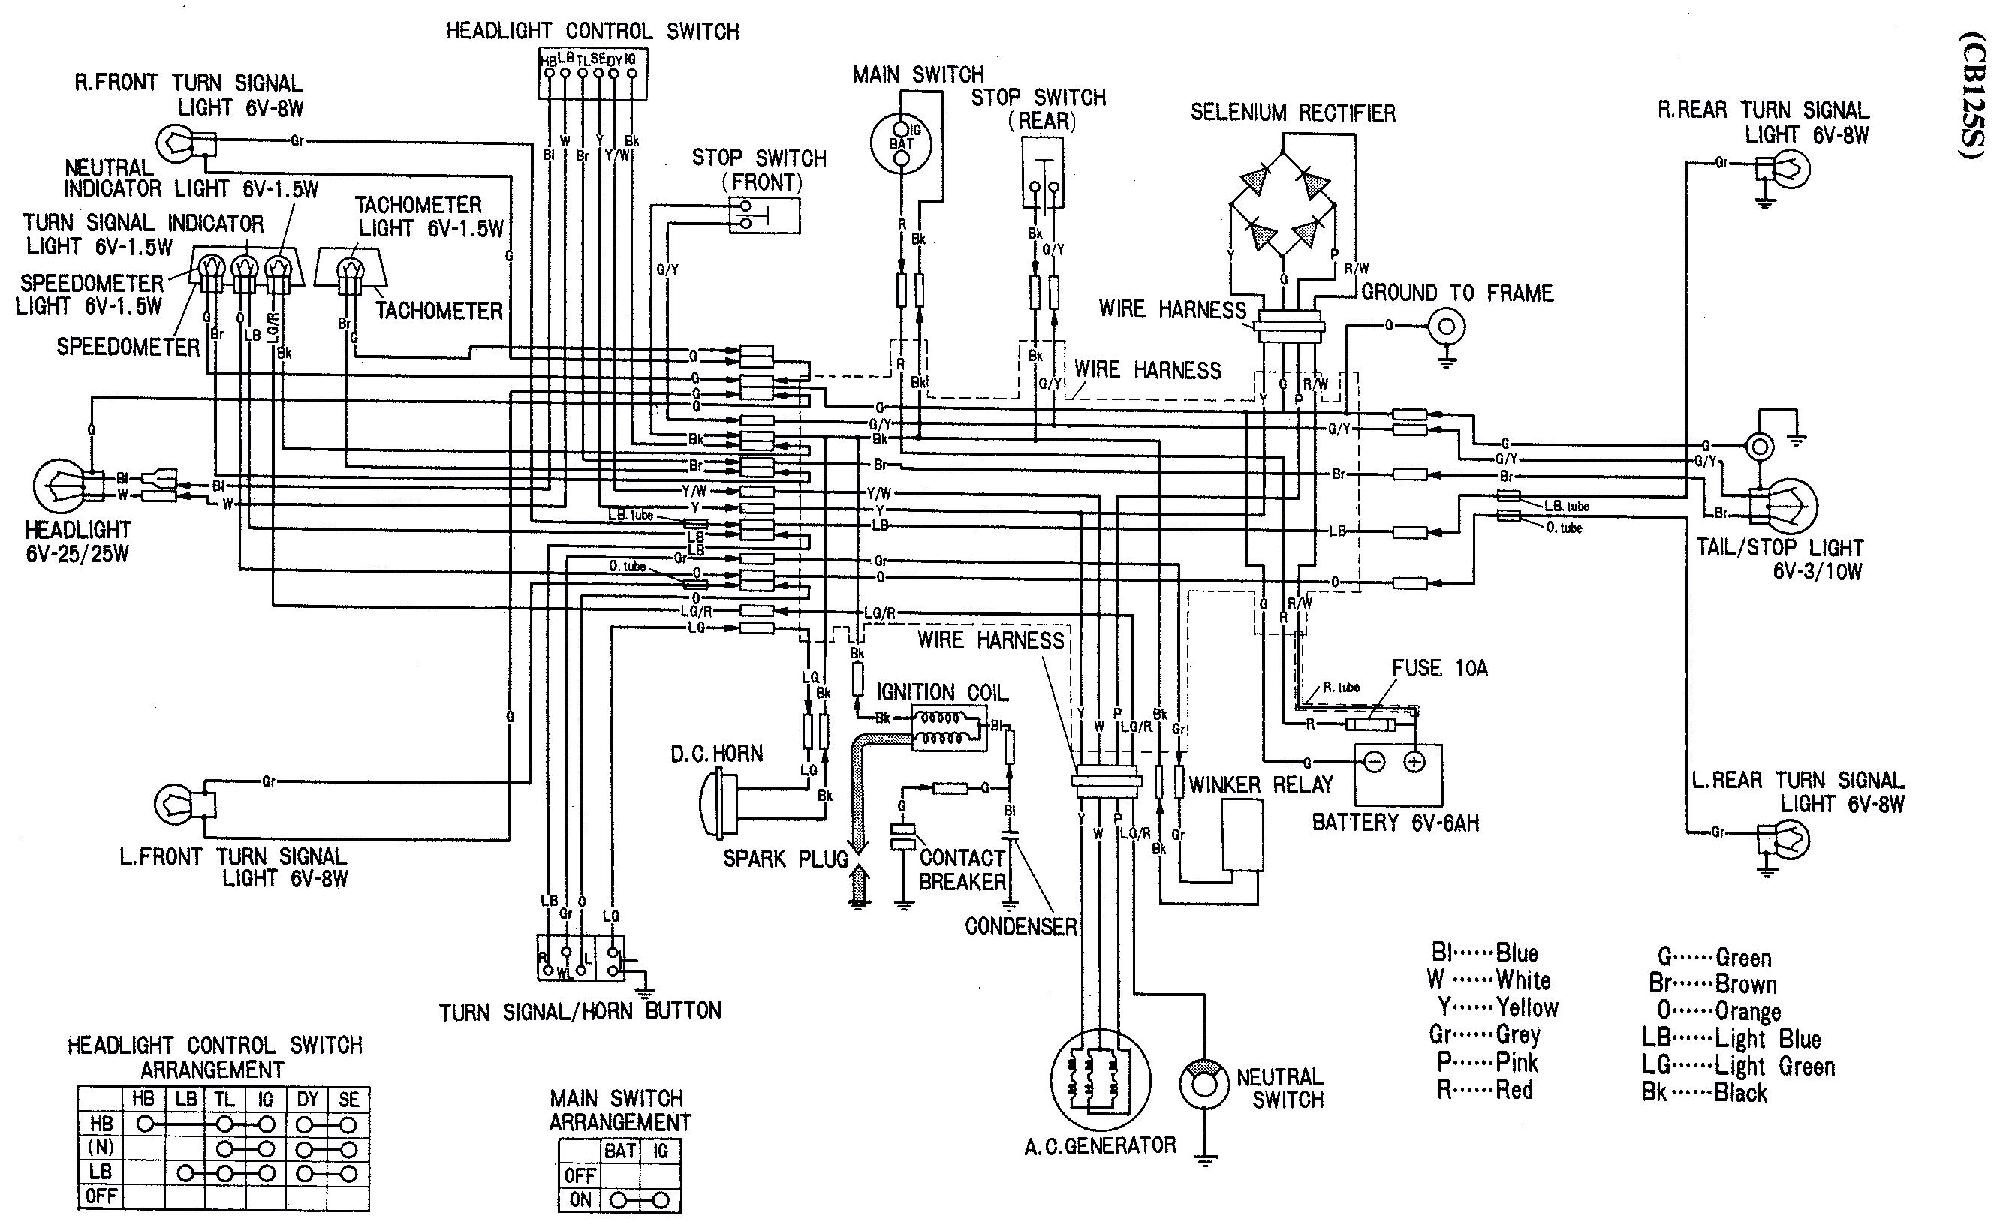 Cb125 Wiring Diagram 2004 525i Wiring Diagram Hvac Keys Can Acces Tukune Jeanjaures37 Fr